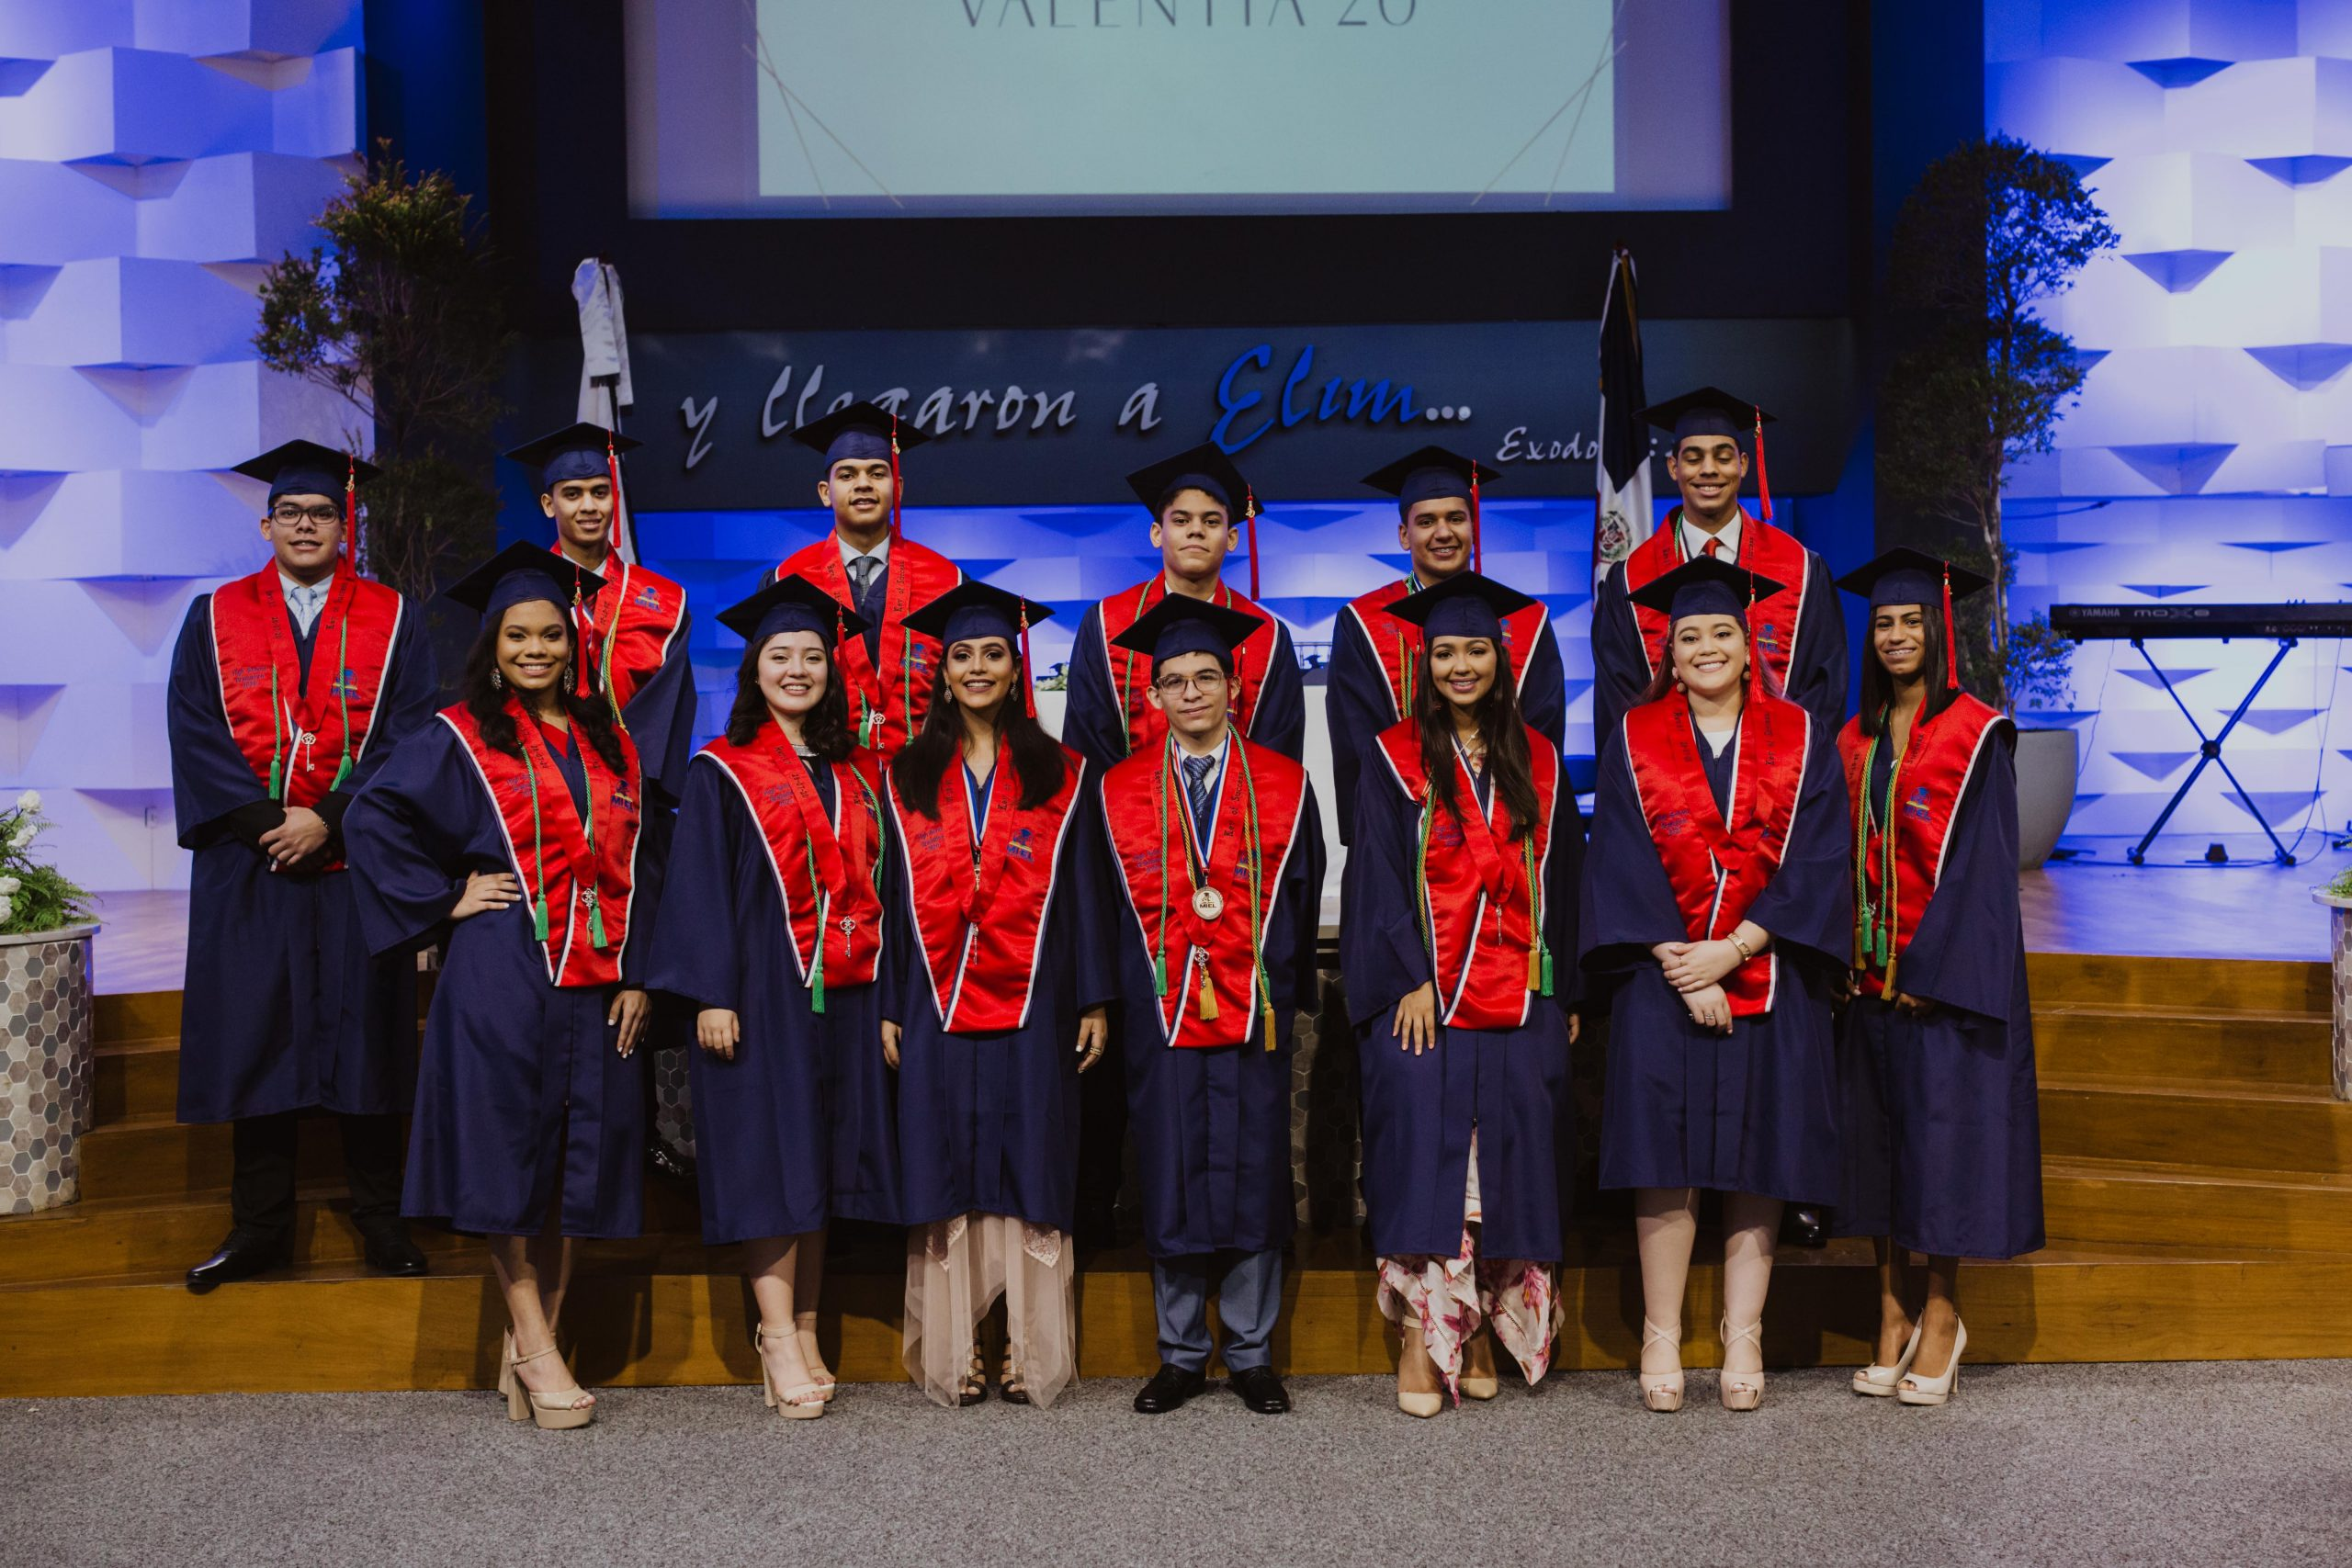 VALENTIA'20 Commencement and Blessing Ceremony